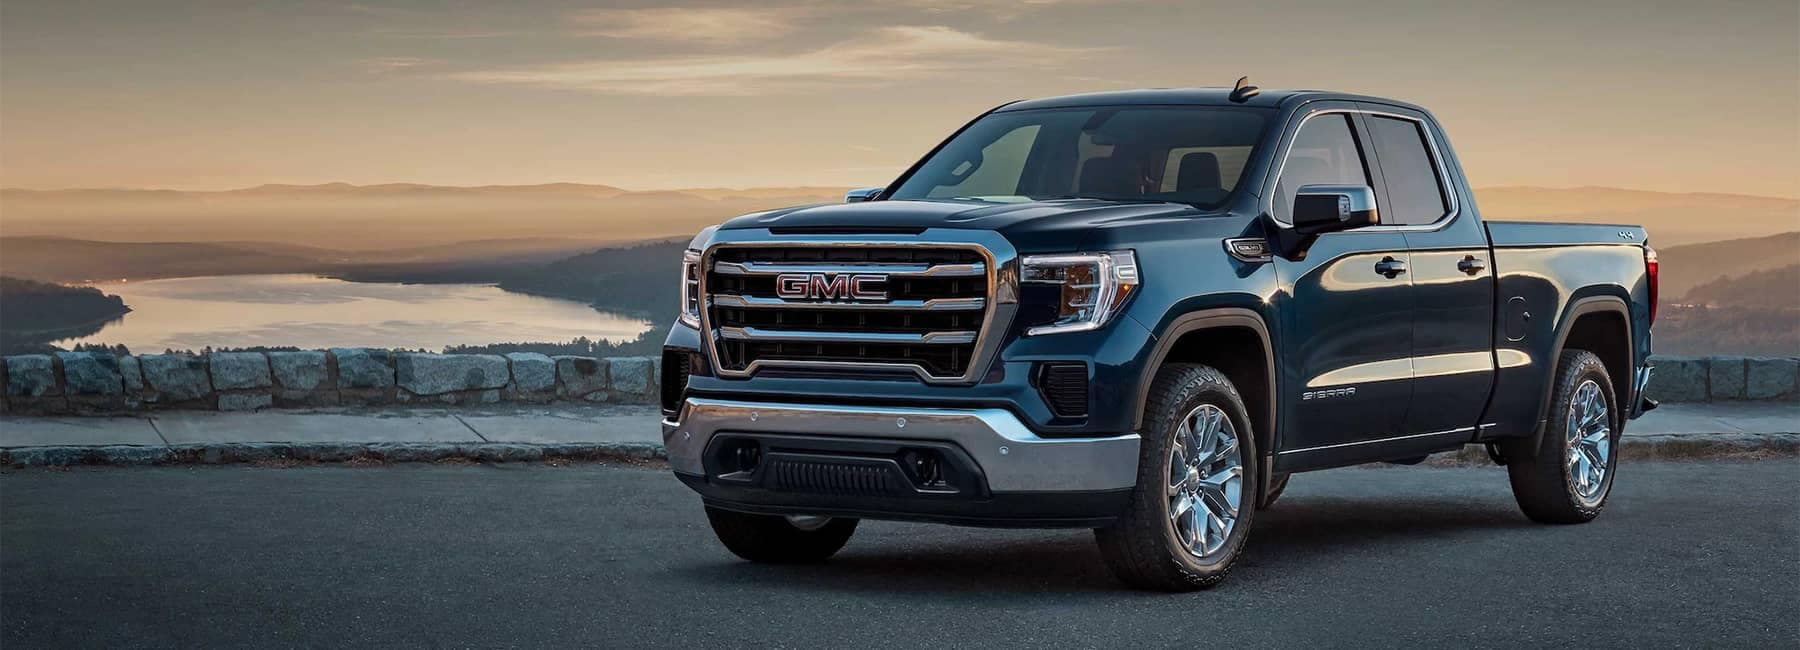 2020 GMC Sierra 1500 Pickup Truck Front Angle View